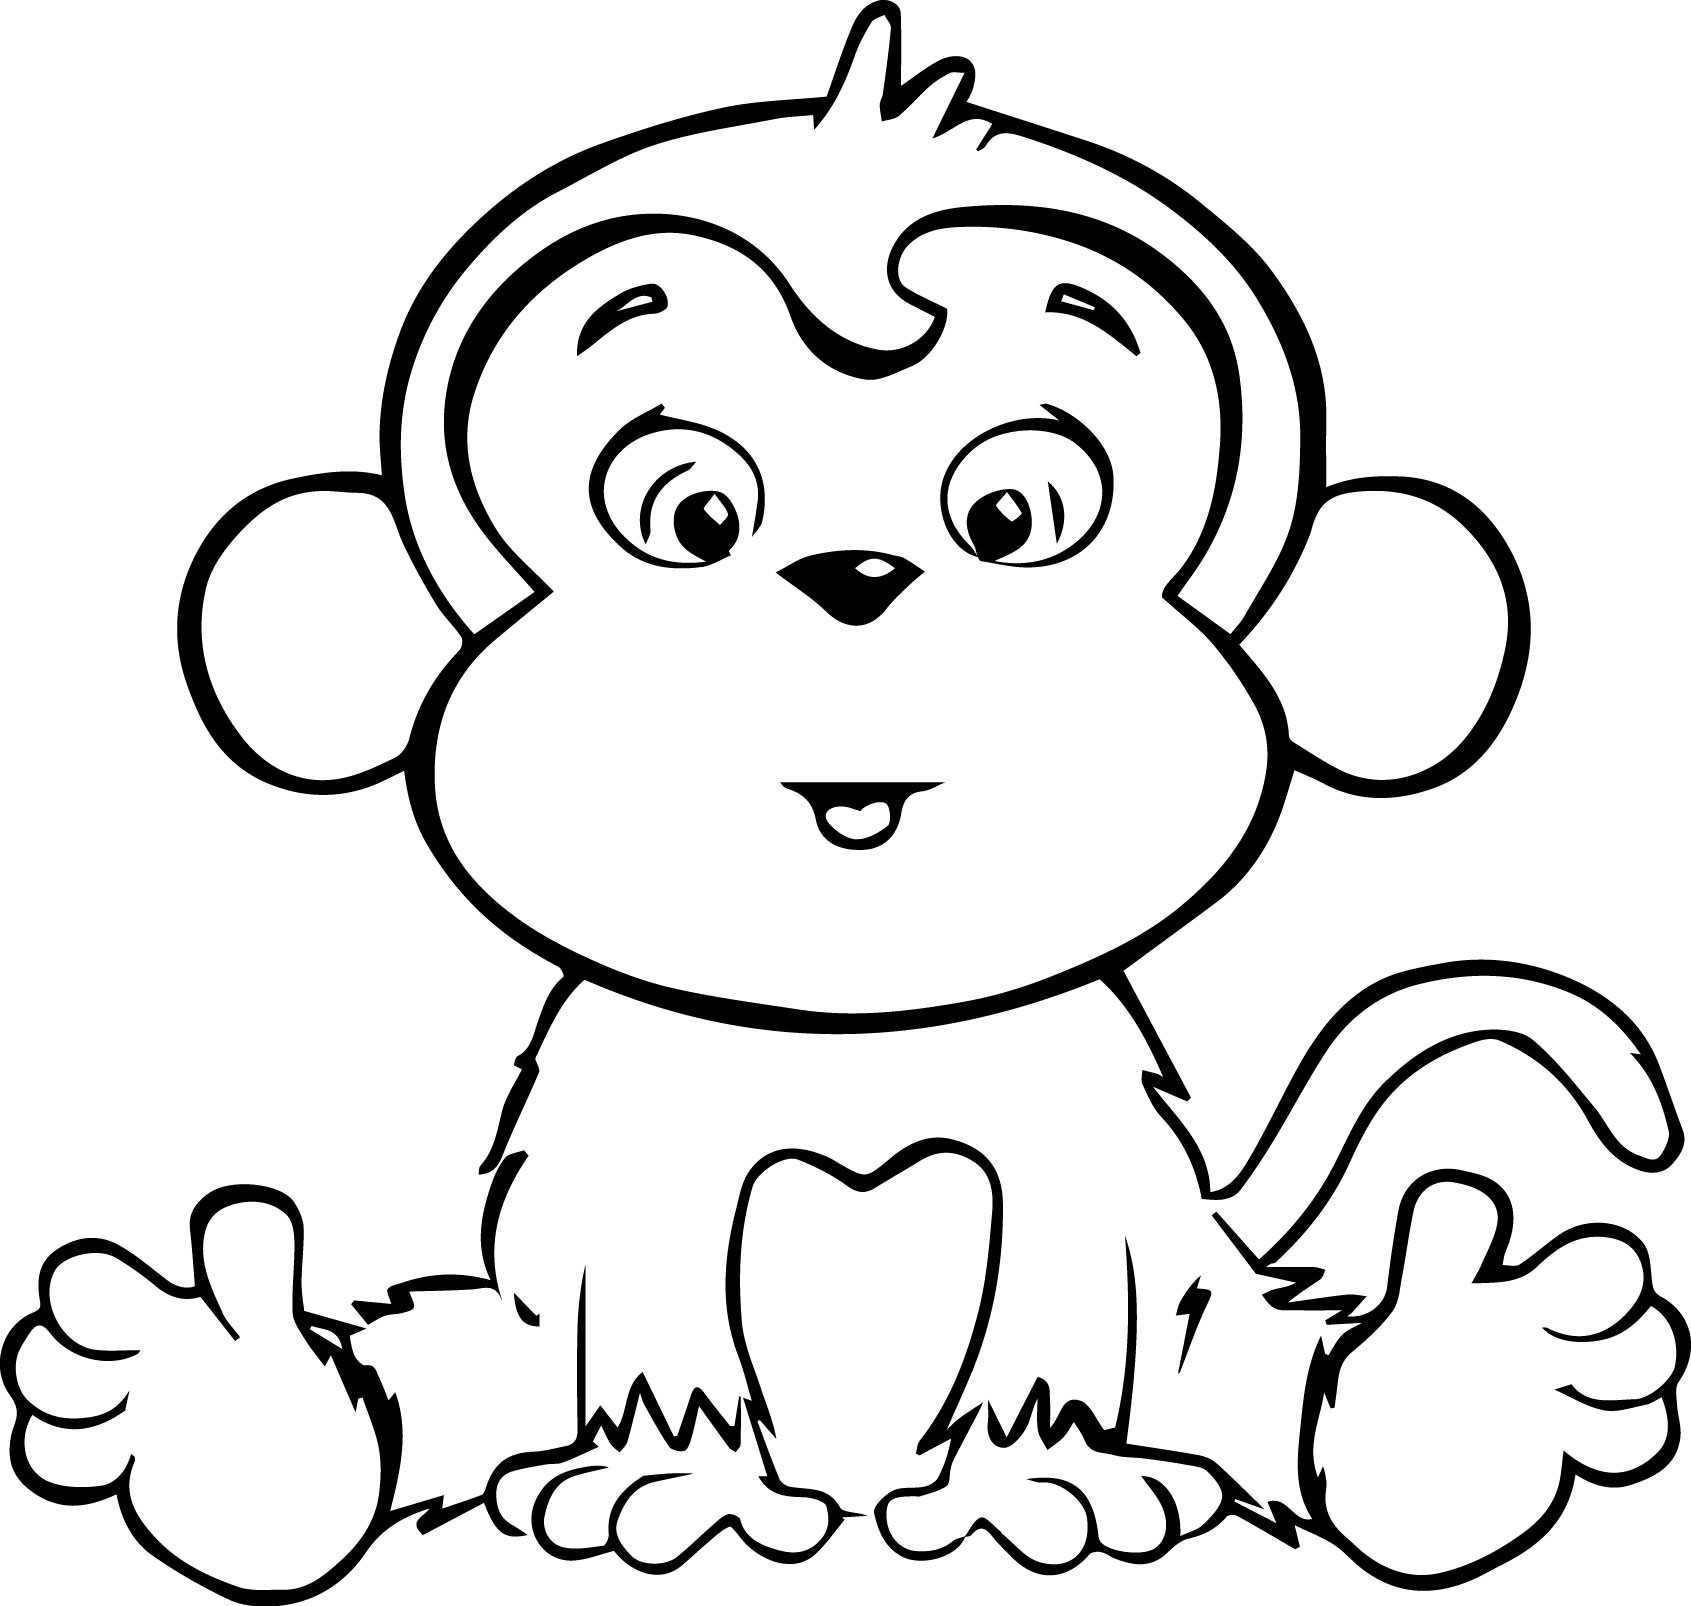 1691x1606 Coloring Pages Of Baby Monkey Fresh Get This Baby Monkey Coloring